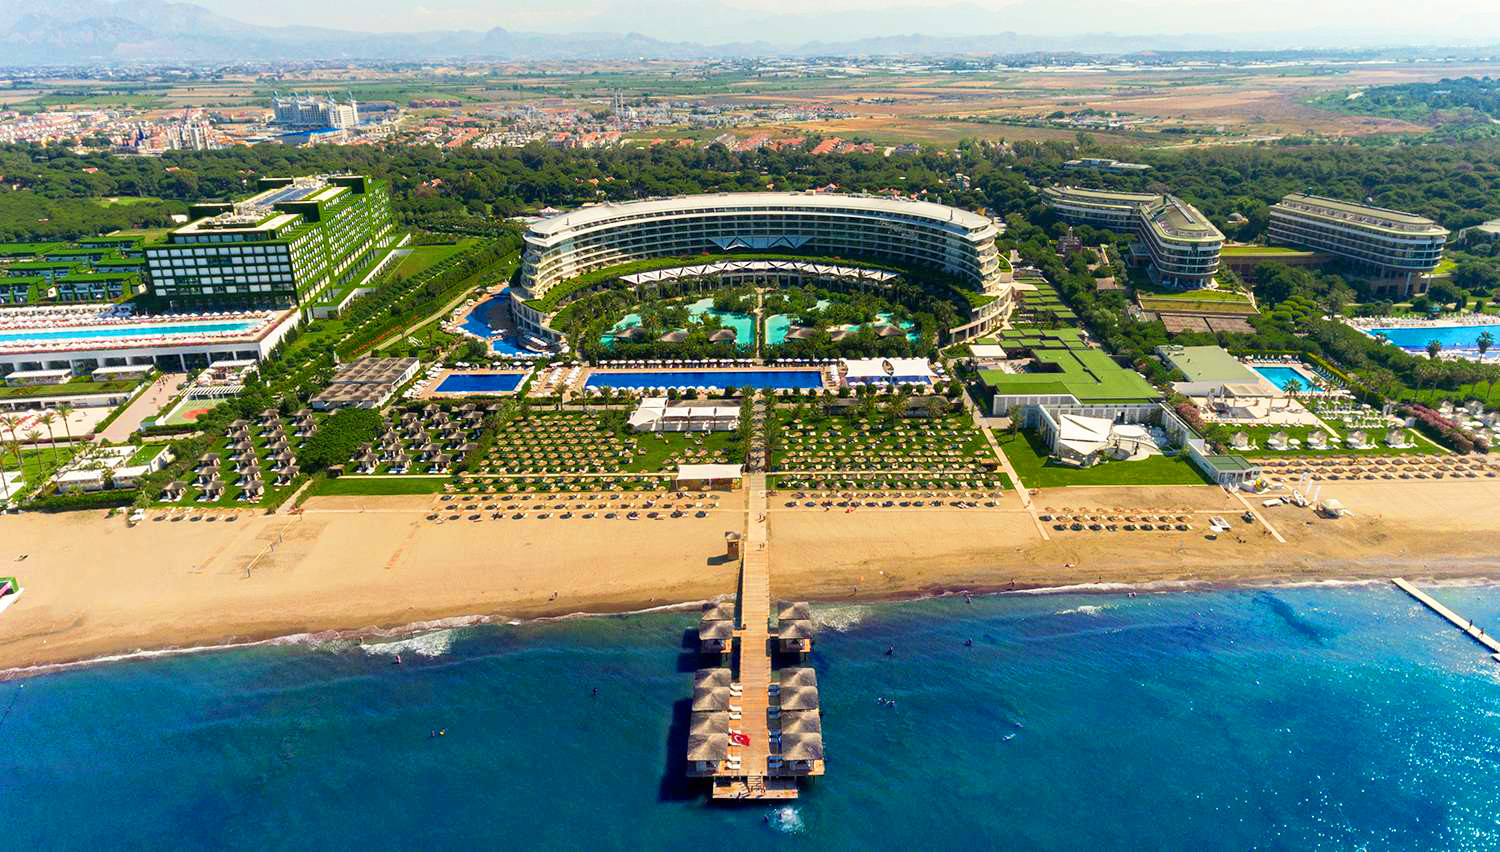 Maxx Royal Belek Golf Resort (Antālija, Turcija)